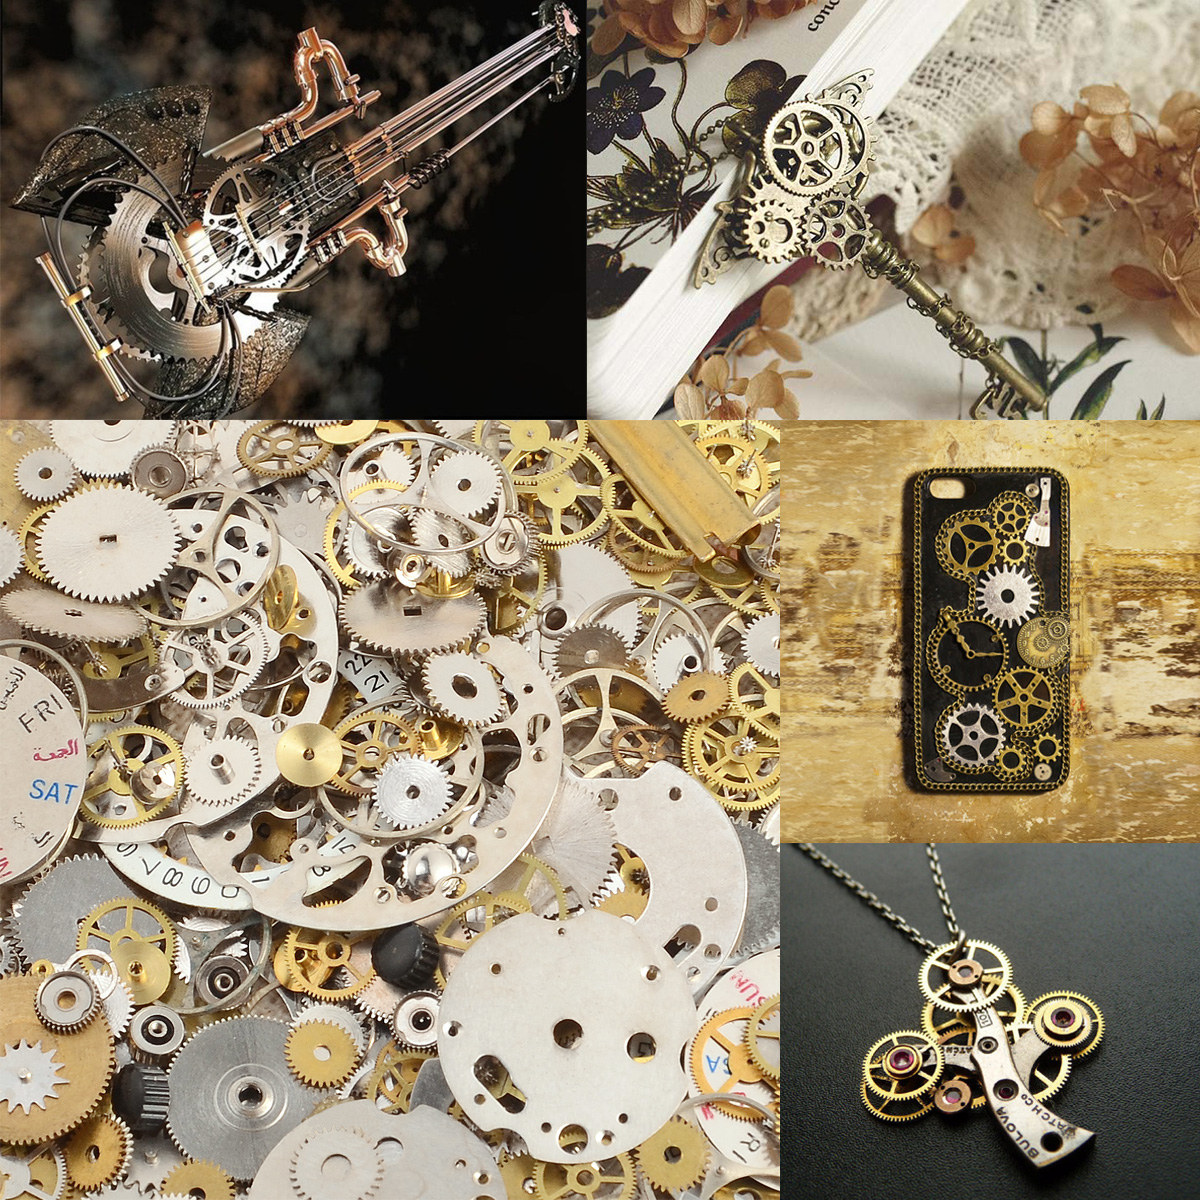 50 gramm steampunk uhr zahnr der bastelset charms basteln metall gothic vintage ebay. Black Bedroom Furniture Sets. Home Design Ideas